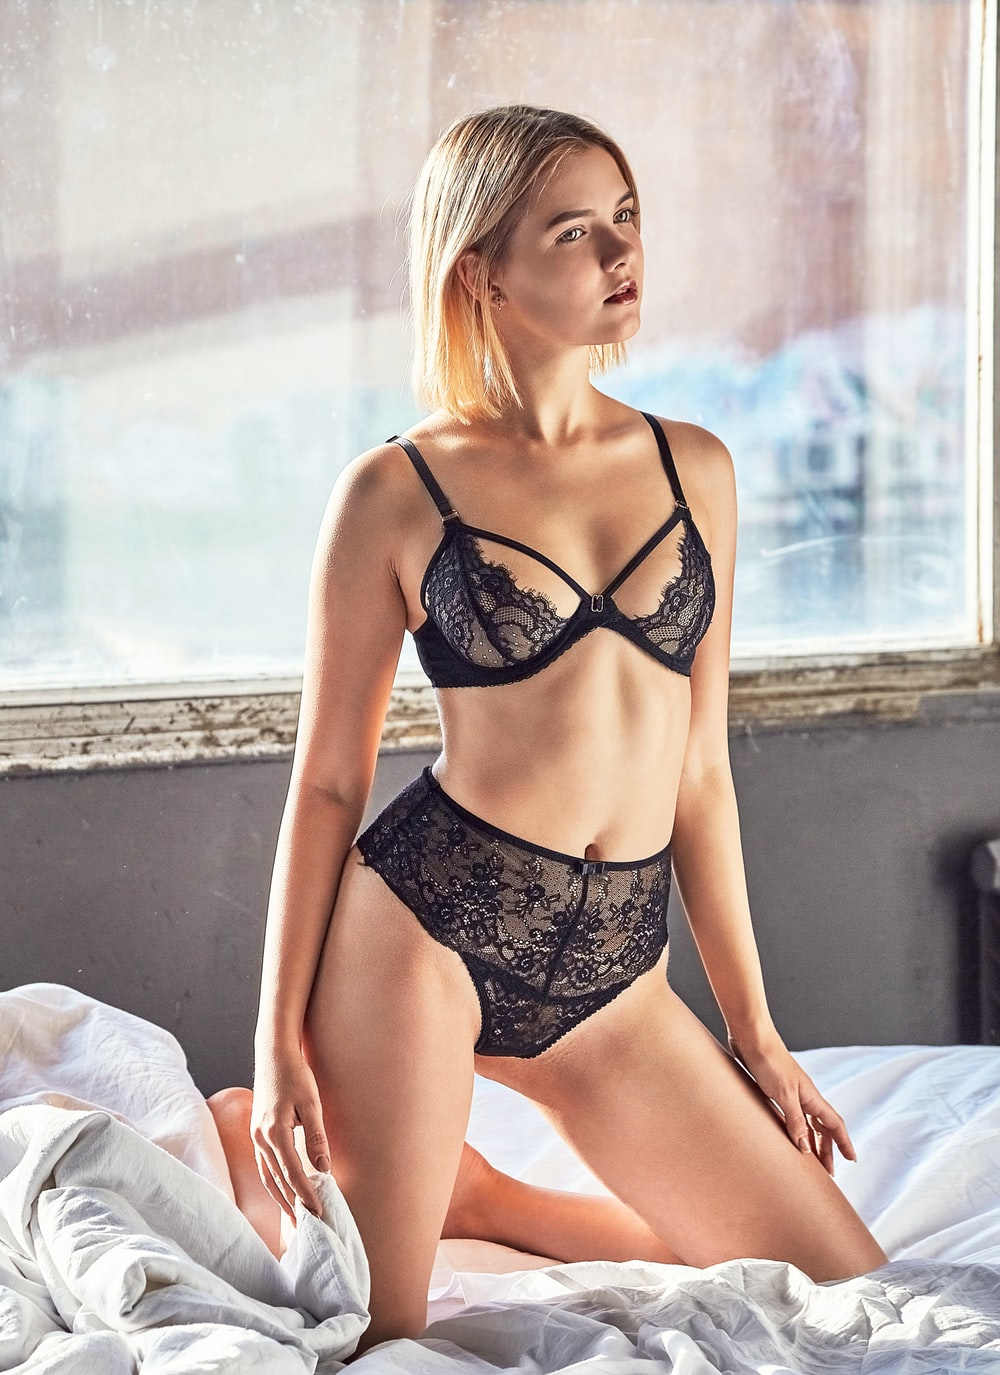 Gallery babe in lingerie bedroom 500 Beautiful Girl In Underwear Pictures Hd Download Free Images On Unsplash